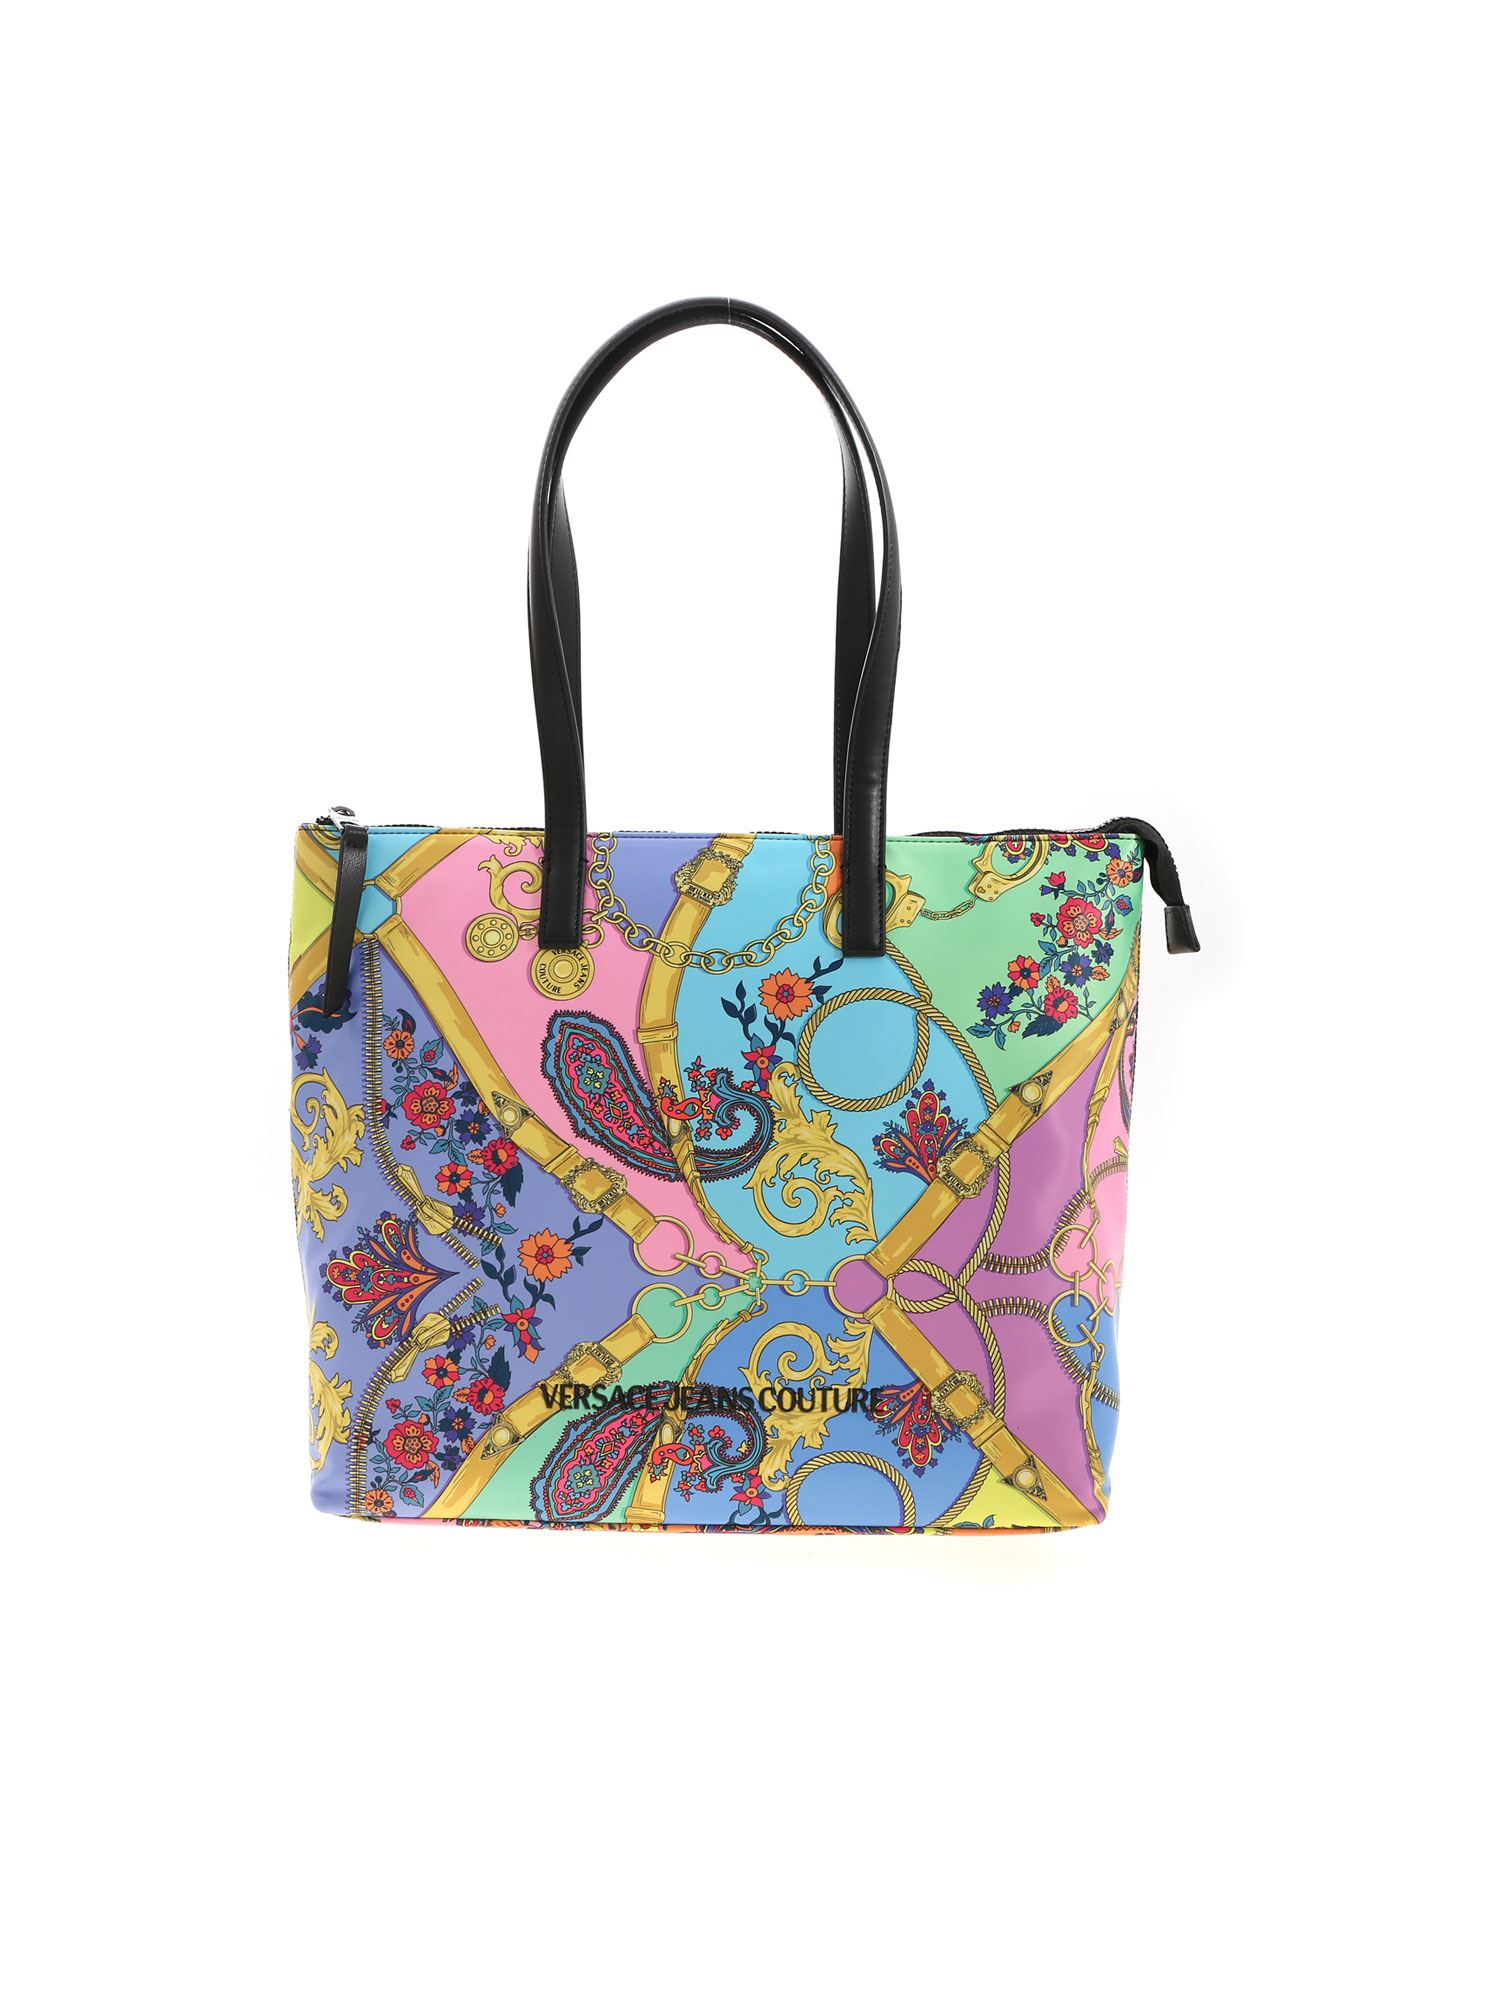 Versace Jeans Couture Multicolored Shopping Bag